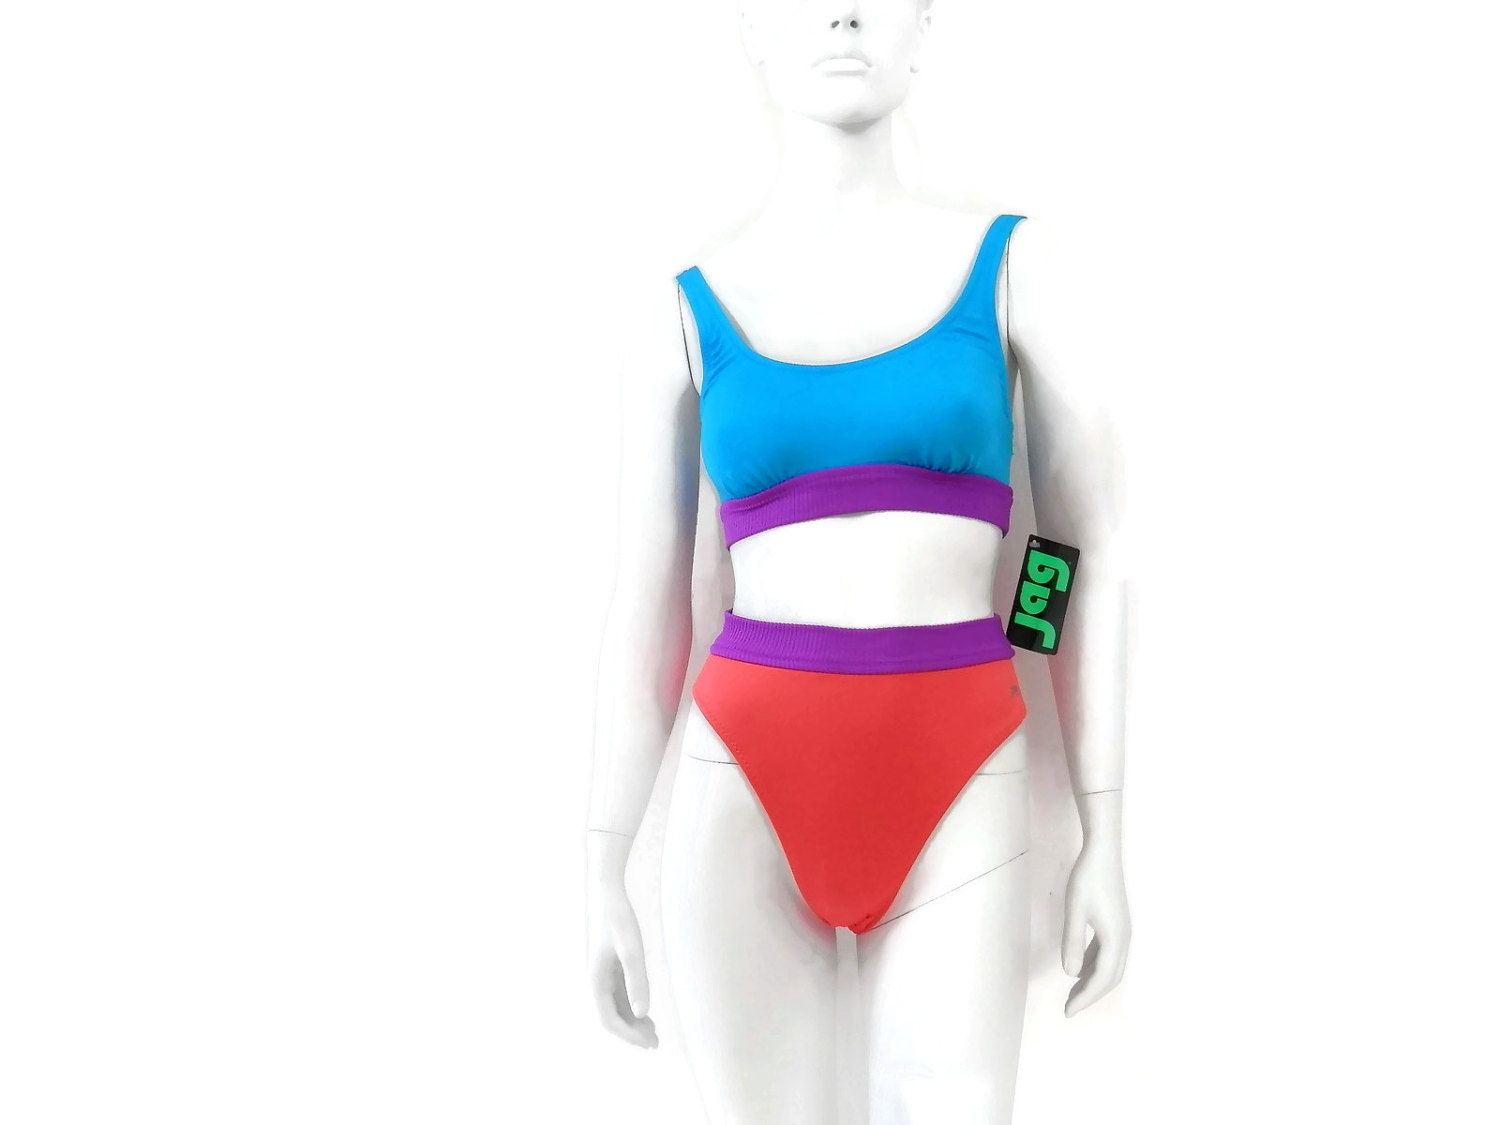 acdba8f240b01 Jag 2 Piece Bikini Swimsuit Hot Neon Orange Purple and Blue High Waist  Trunk Vintage 80s Bathing Suit Old Store Dead Stock sz 10 #151 by  bigbangzero on Etsy